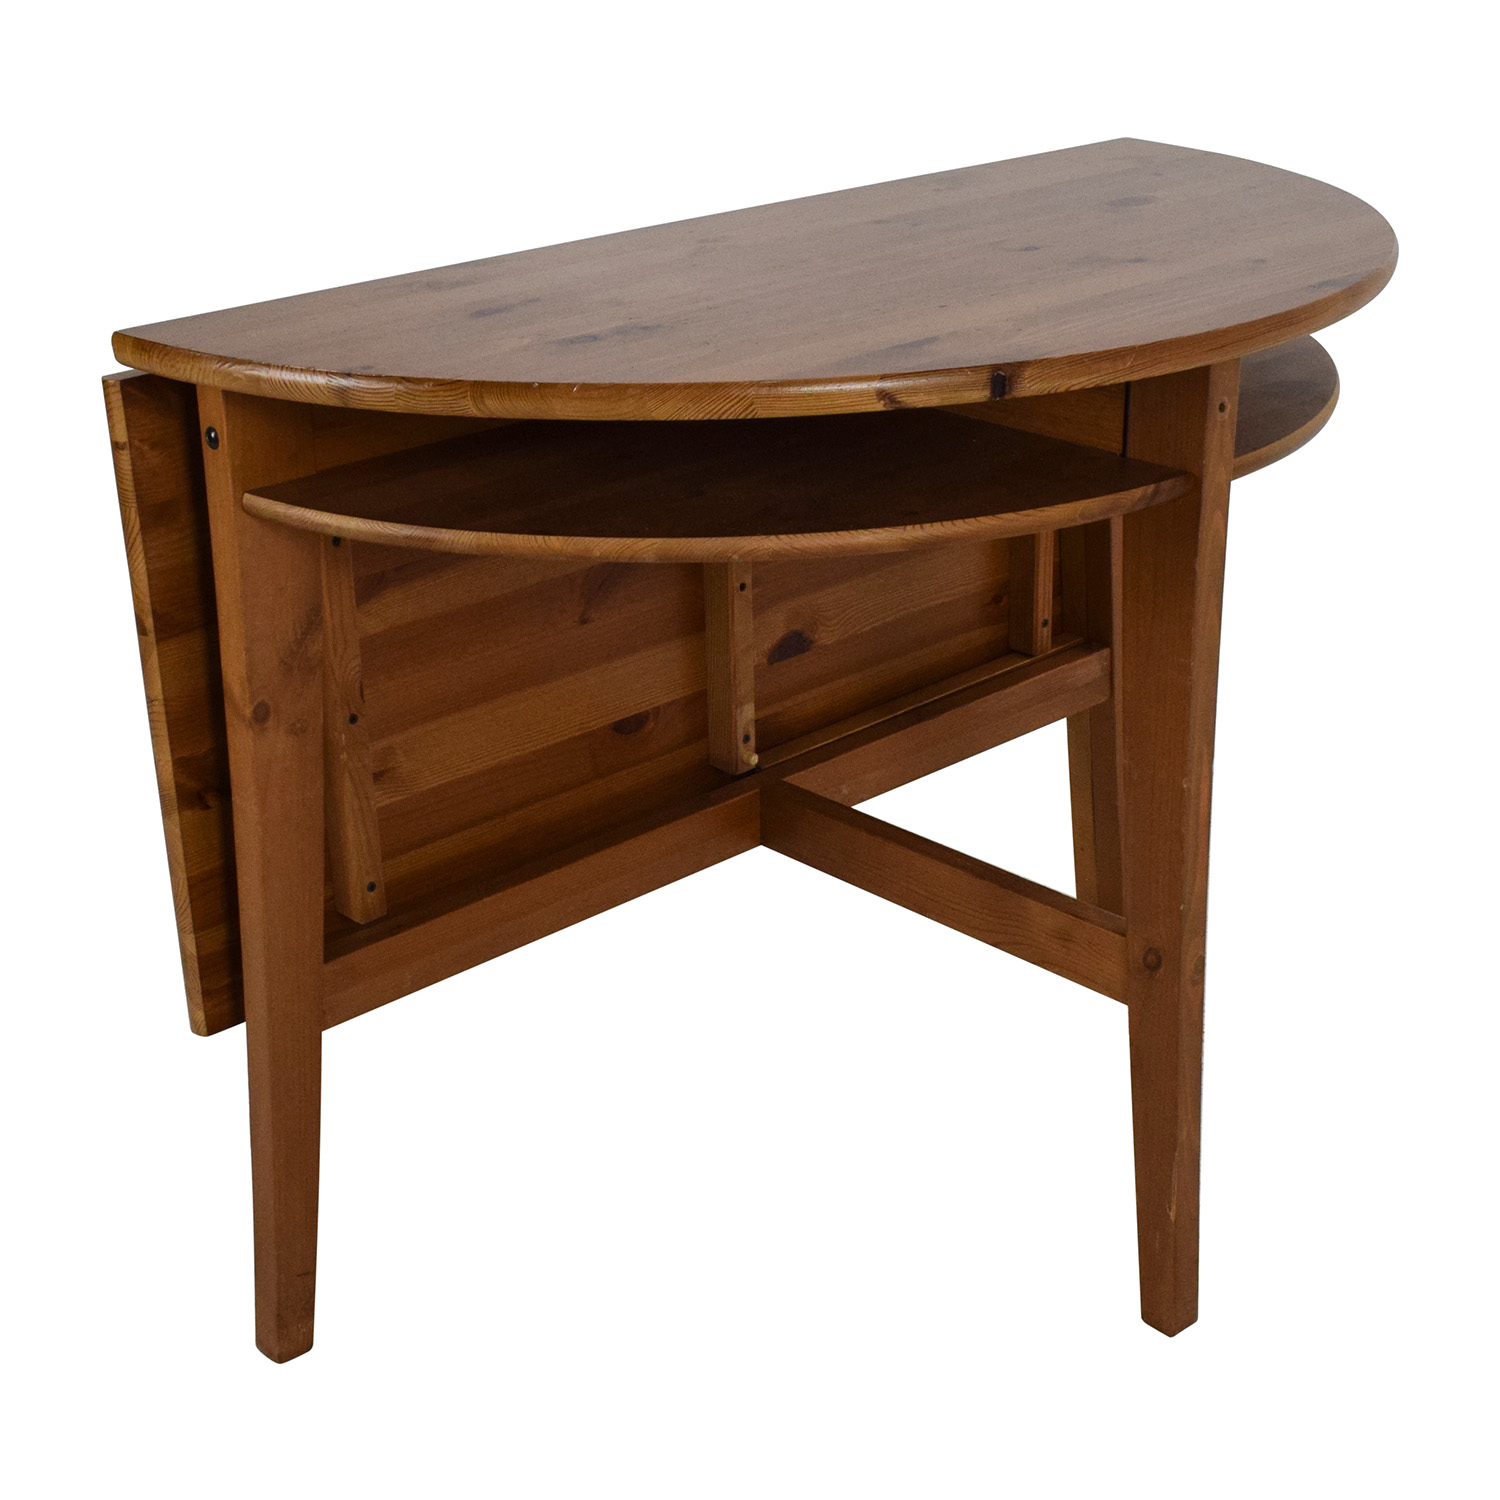 Foldable Wooden Kitchen Table second hand